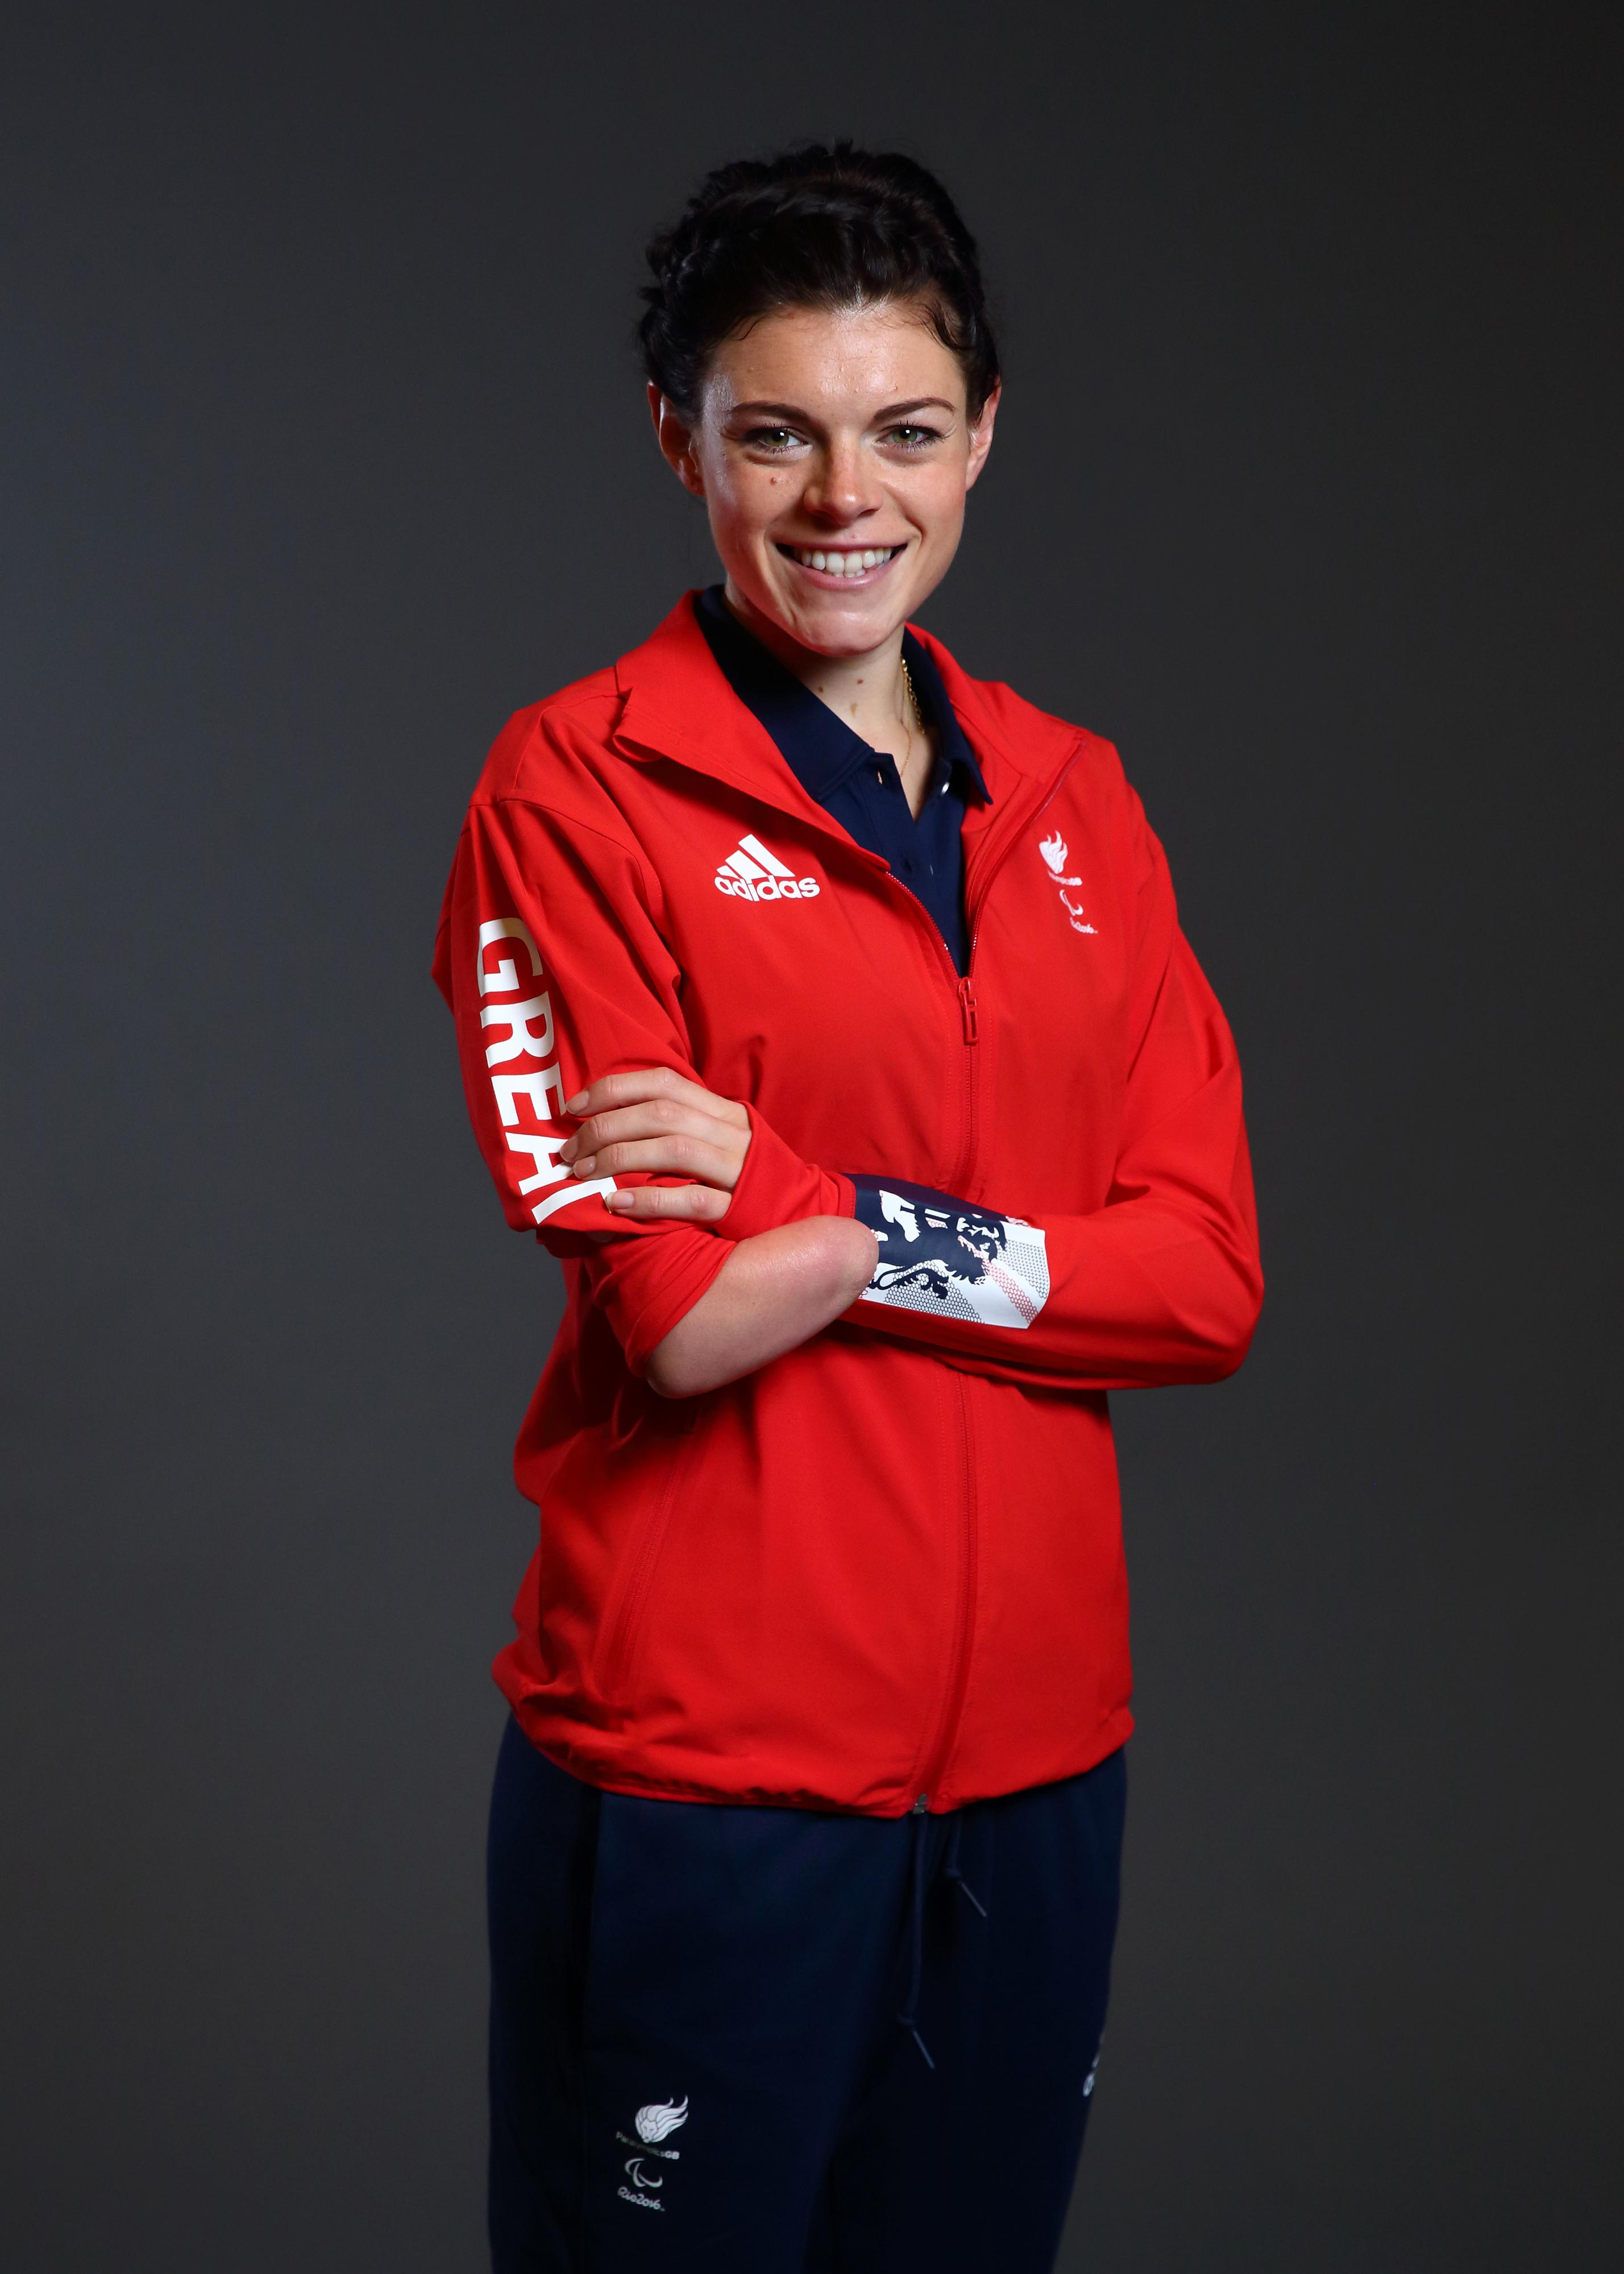 Lauren Steadman has signed up for Strictly Come Dancing